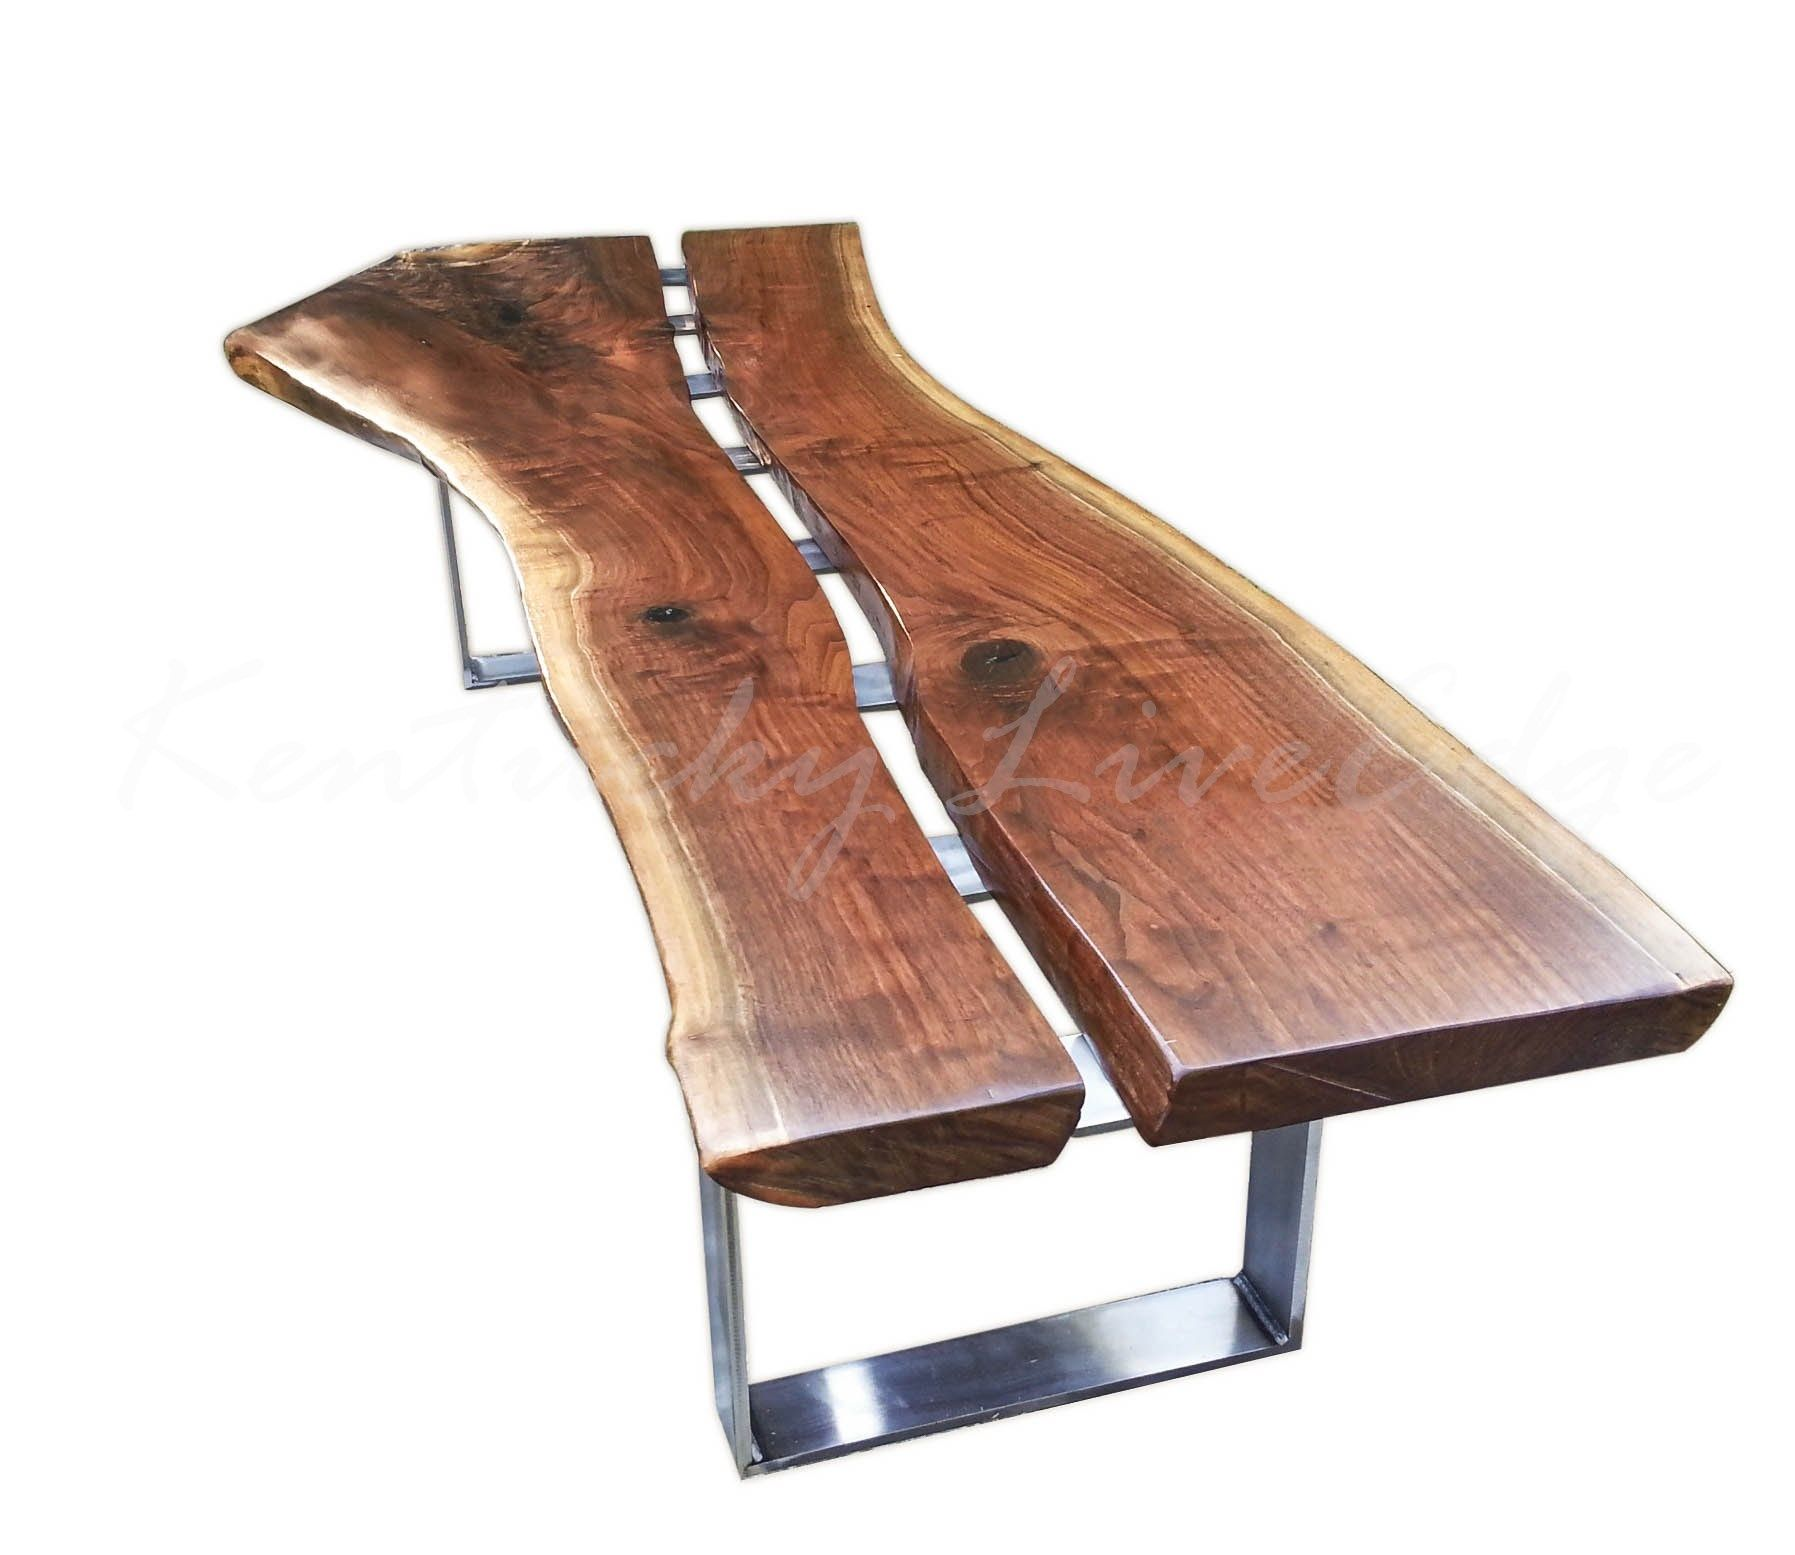 Vintage Industrial Live Edge Walnut Slab Coffee Table: Custom Modern Live Edge Walnut And Steel Coffee Table